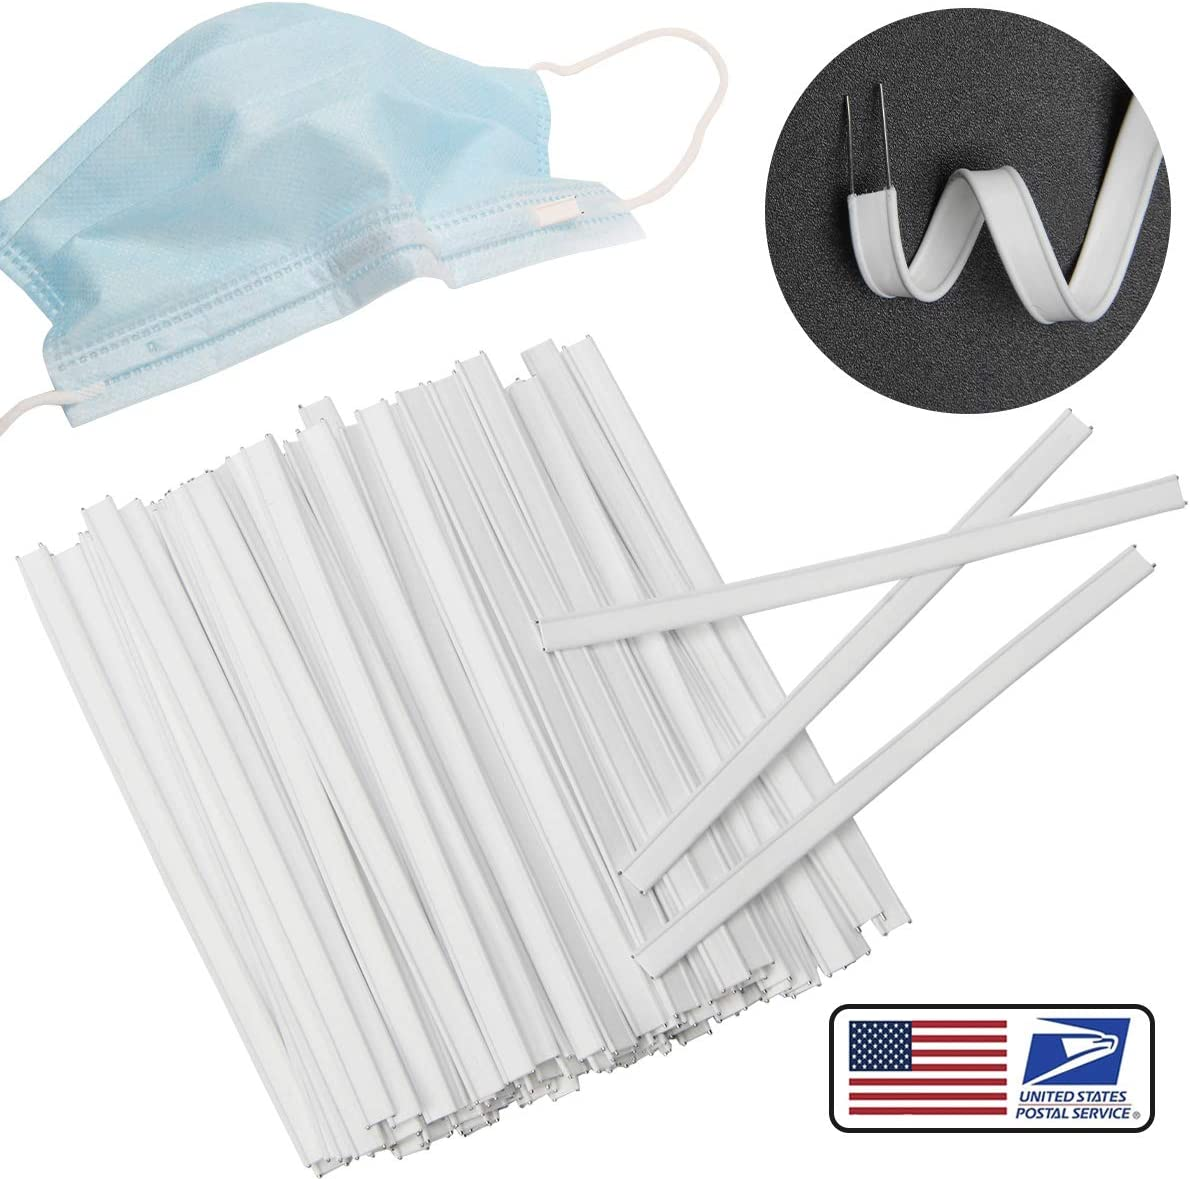 Flat Nose Wire Clips Plastic Strips for Handmade Crafting Plastic Nose Bridge Strip Wire for DIY Making 10CM Double Wire Nose Bridge Strips 200